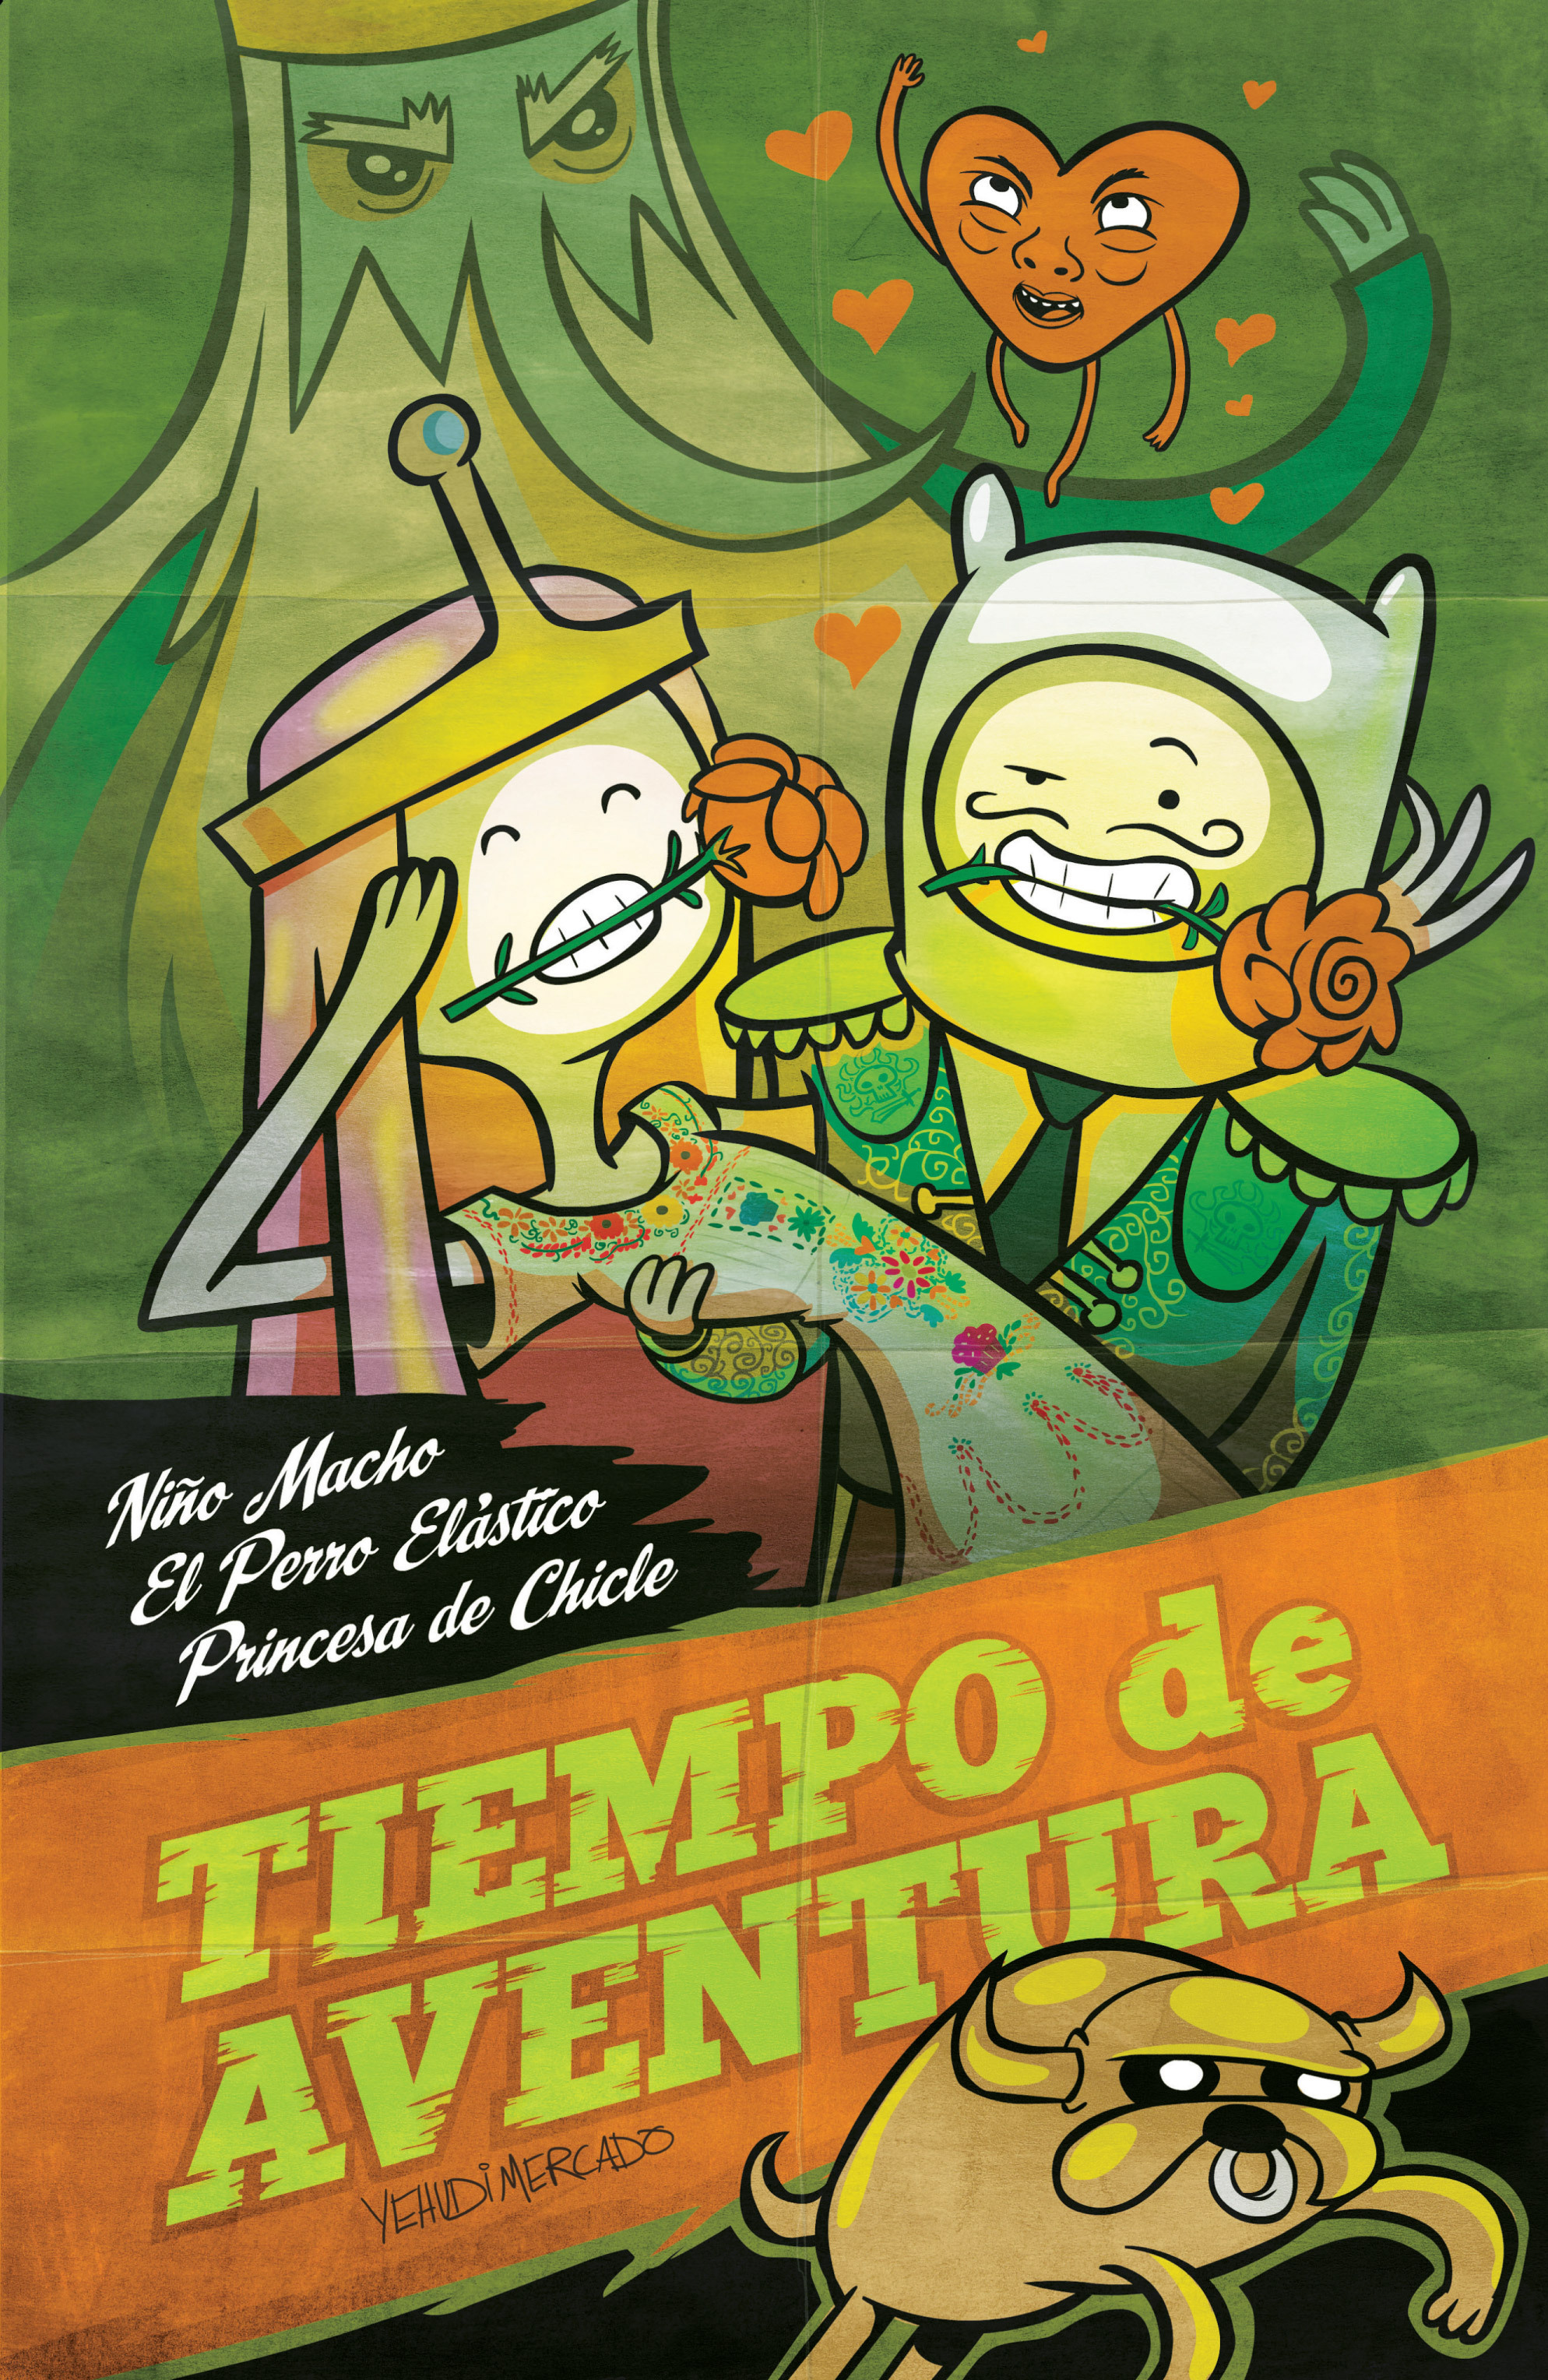 Read online Adventure Time comic -  Issue #18 - 4